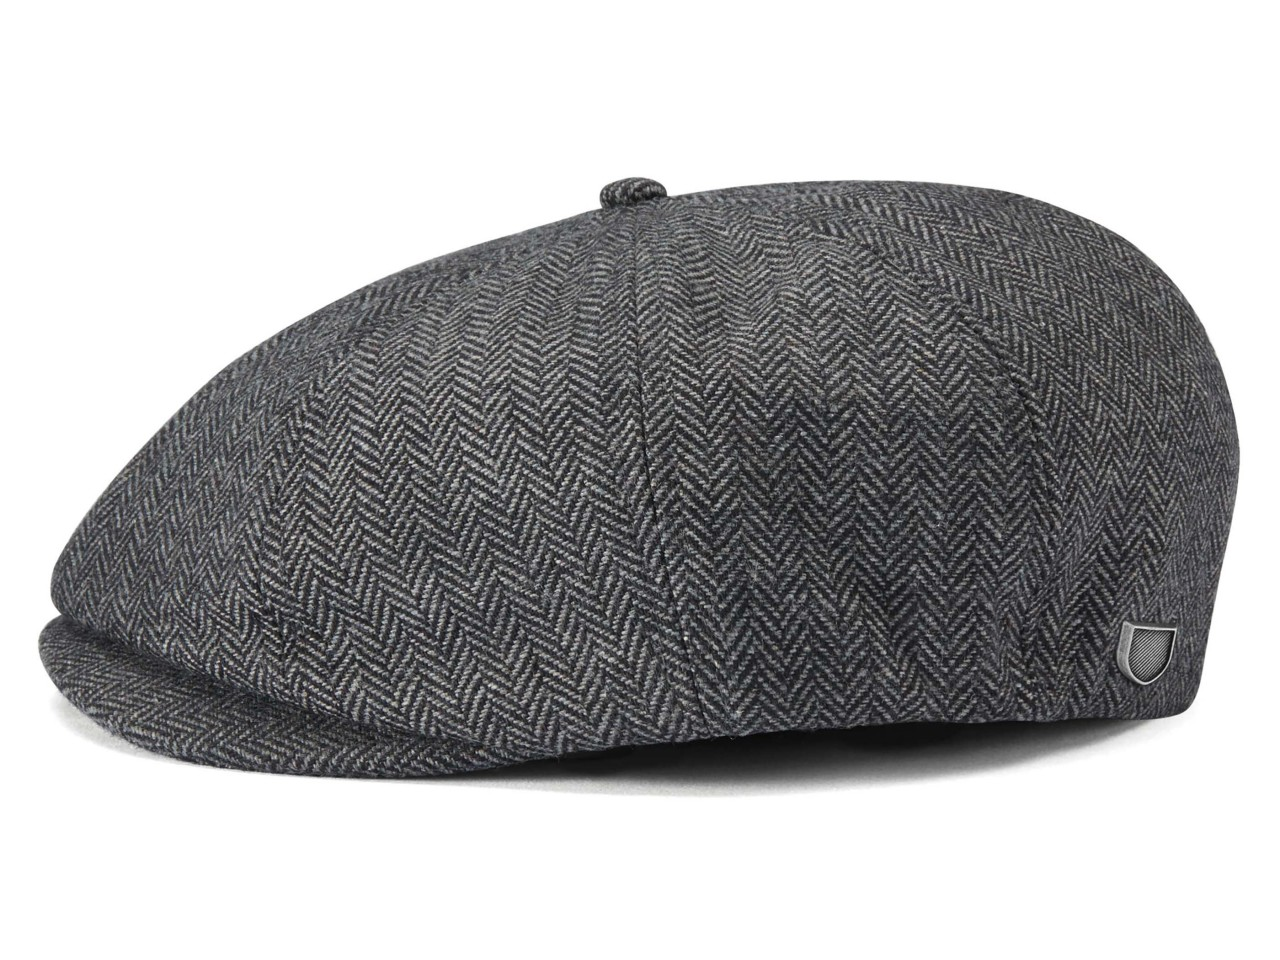 Brixton Brood Snap Cap 8 Panel Newsboy Flatcap